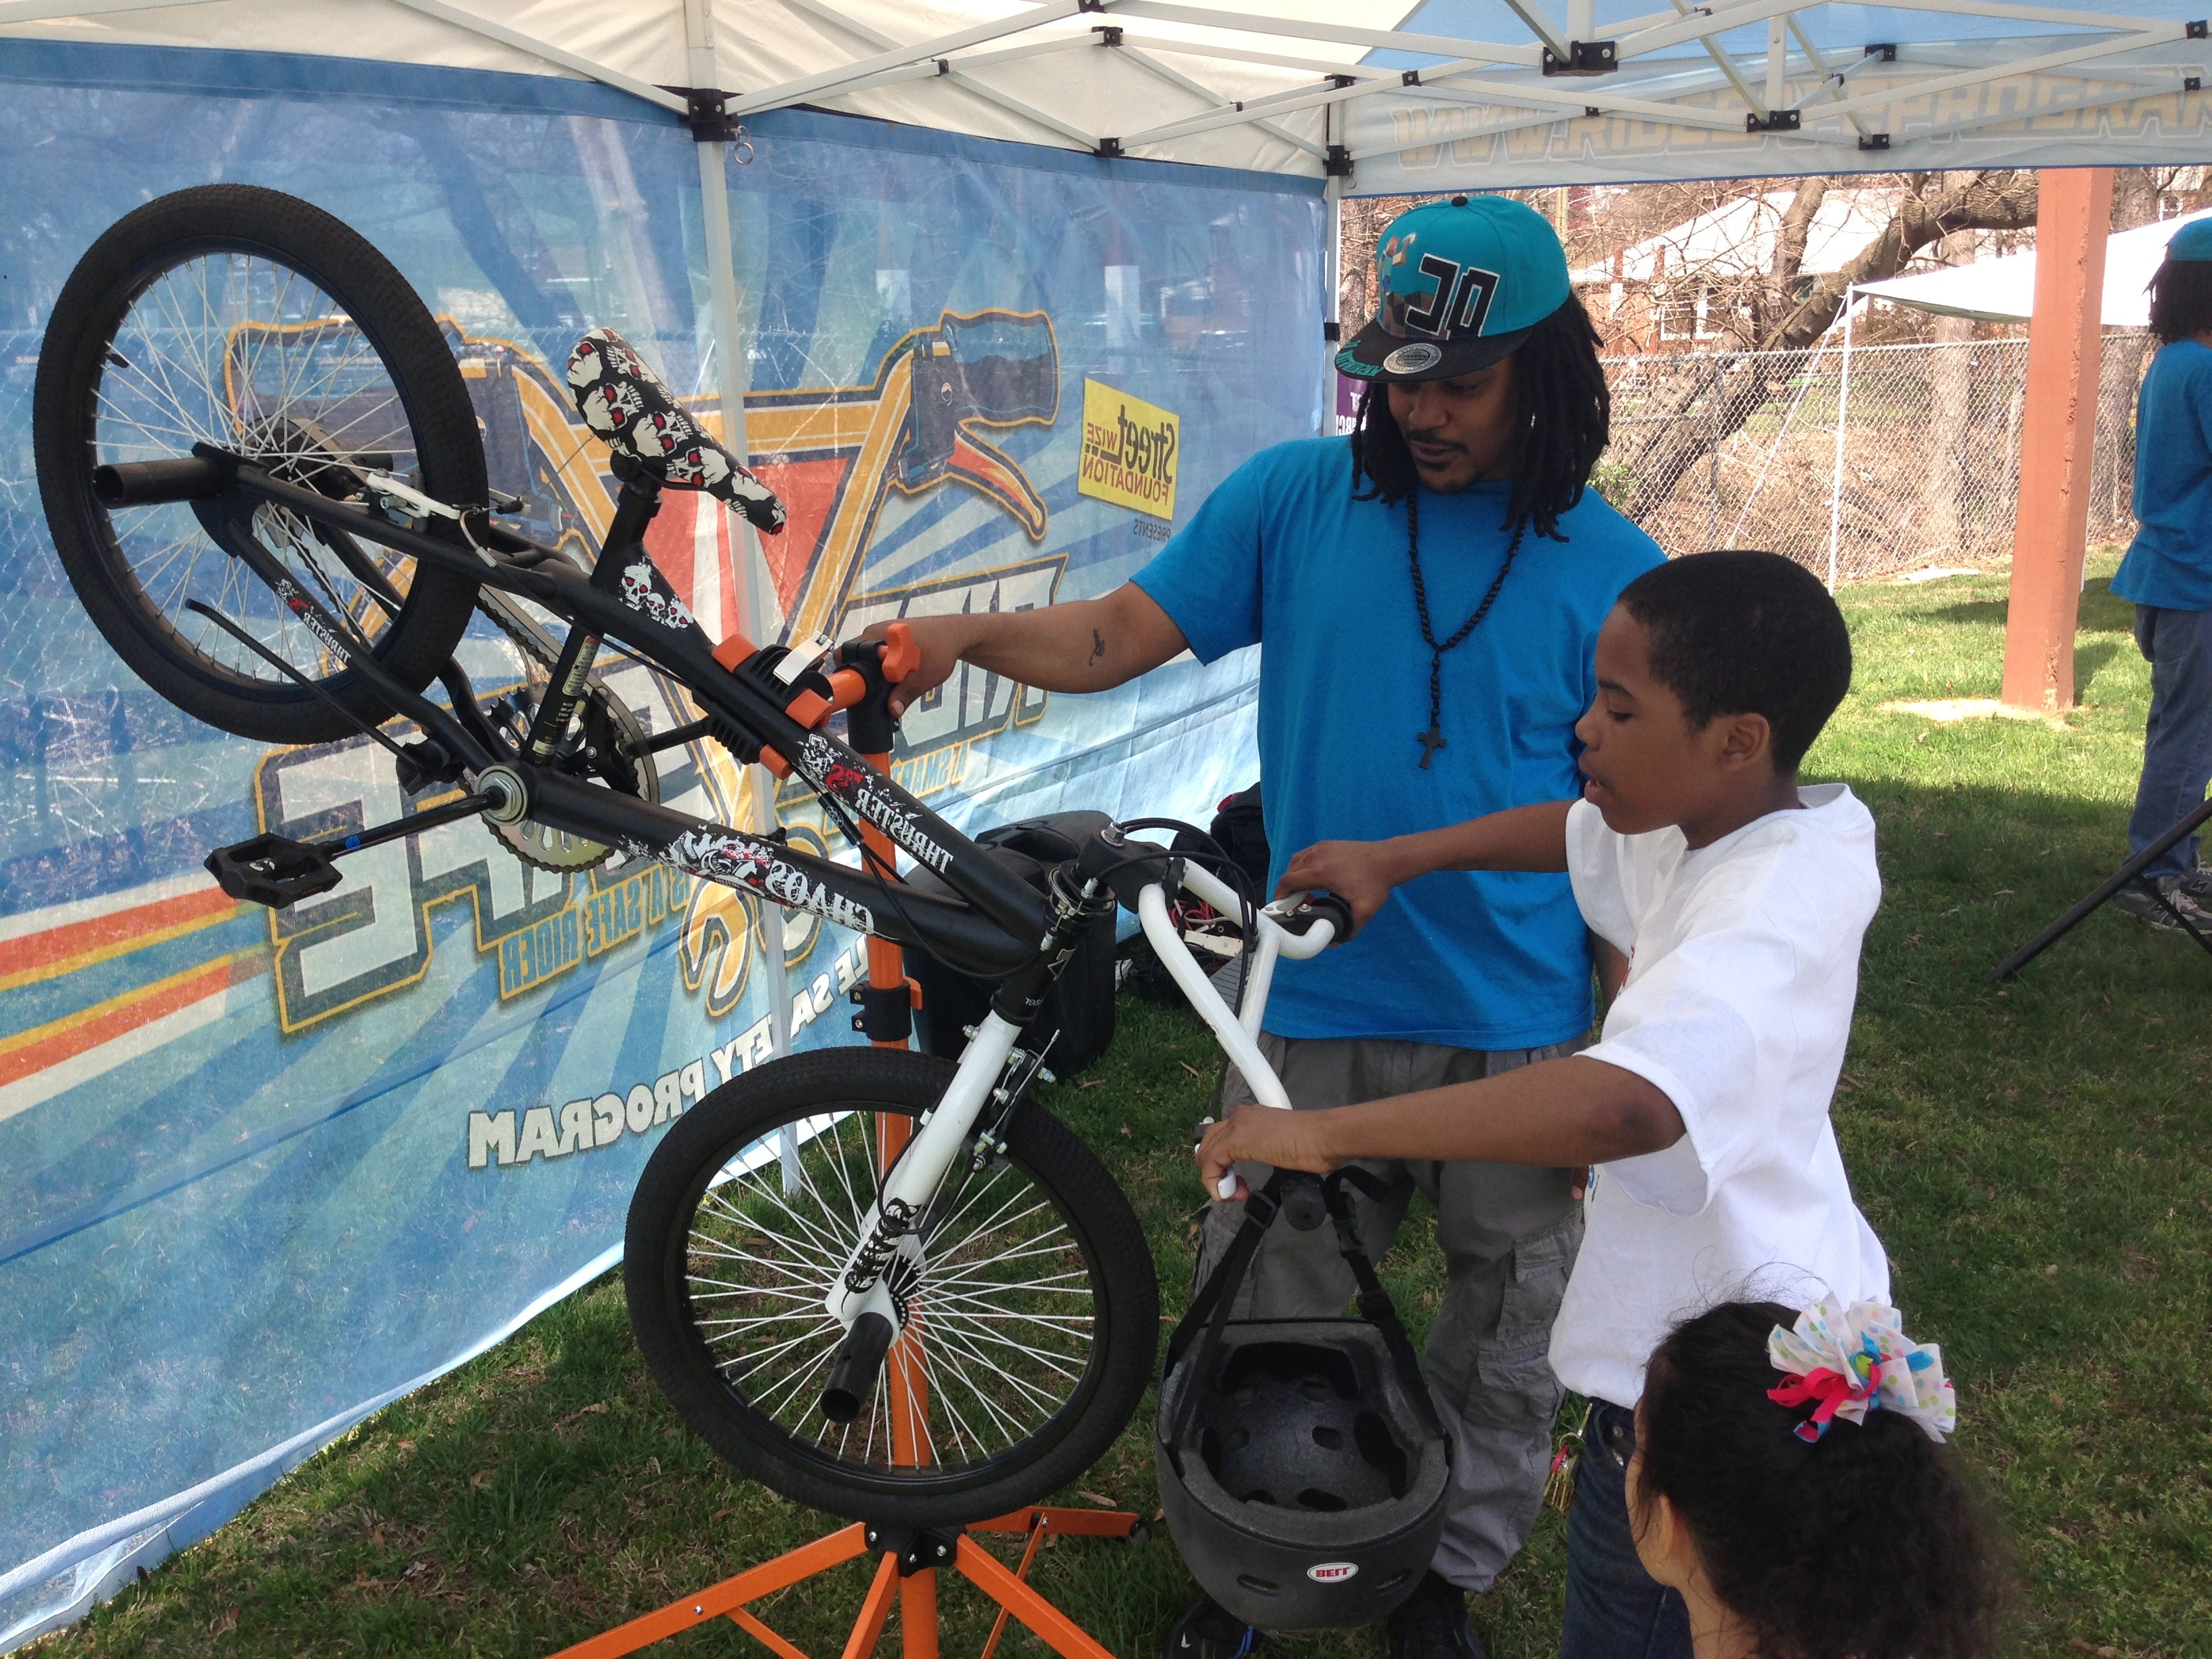 Street Wize Foundation's Ride Safe Youth Bicycle Safety Program was at the Capital Heights Community Day Event showing youth basic bicycle safety.